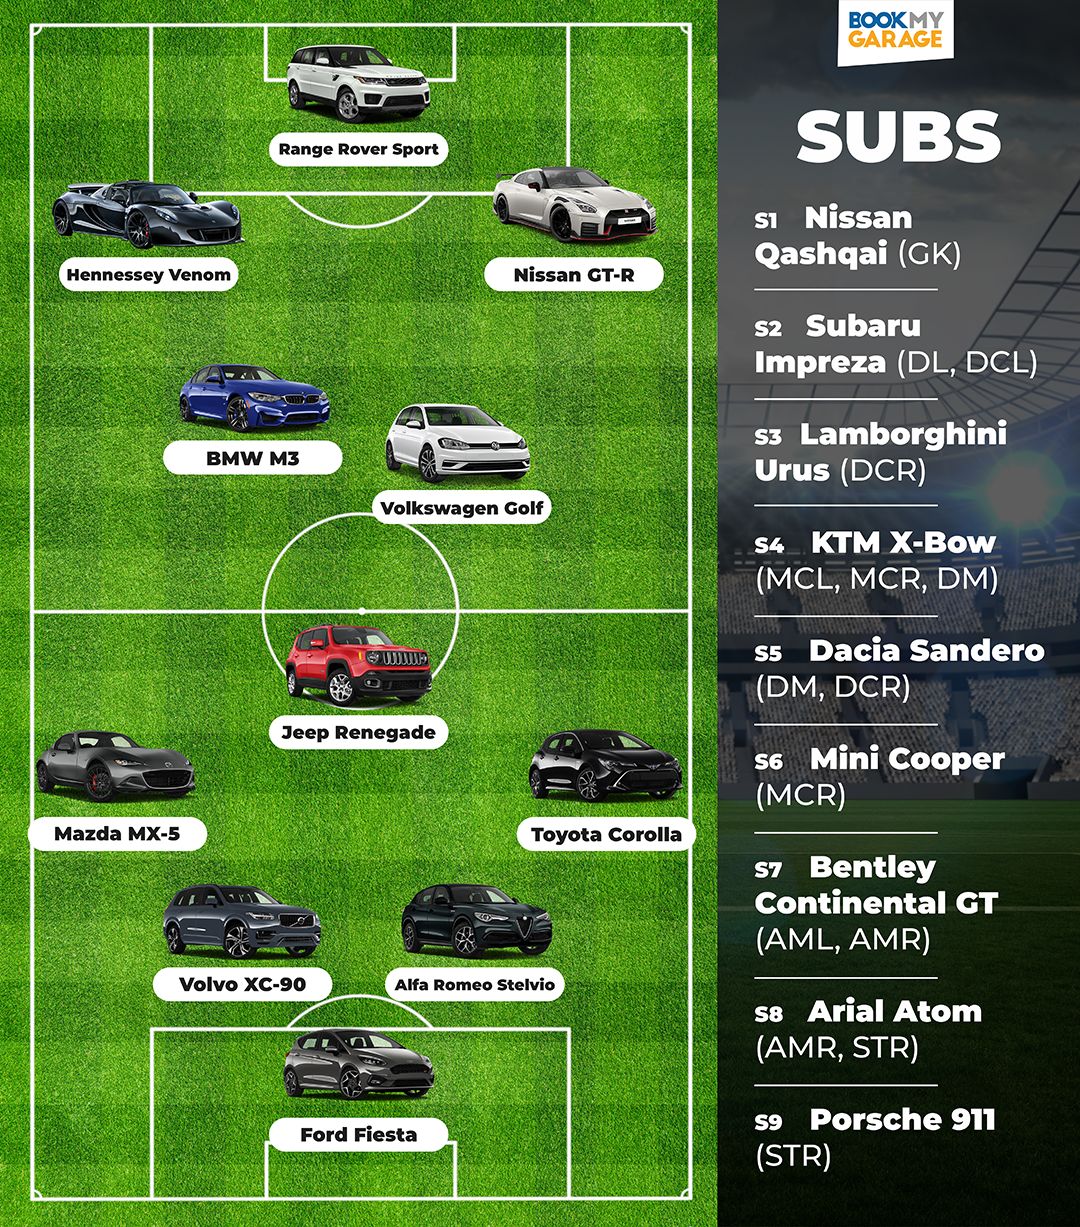 BookMyGarage branded infographic showing car football first 11 lined up on a football pitch with the list of substitue cars down the right hand side